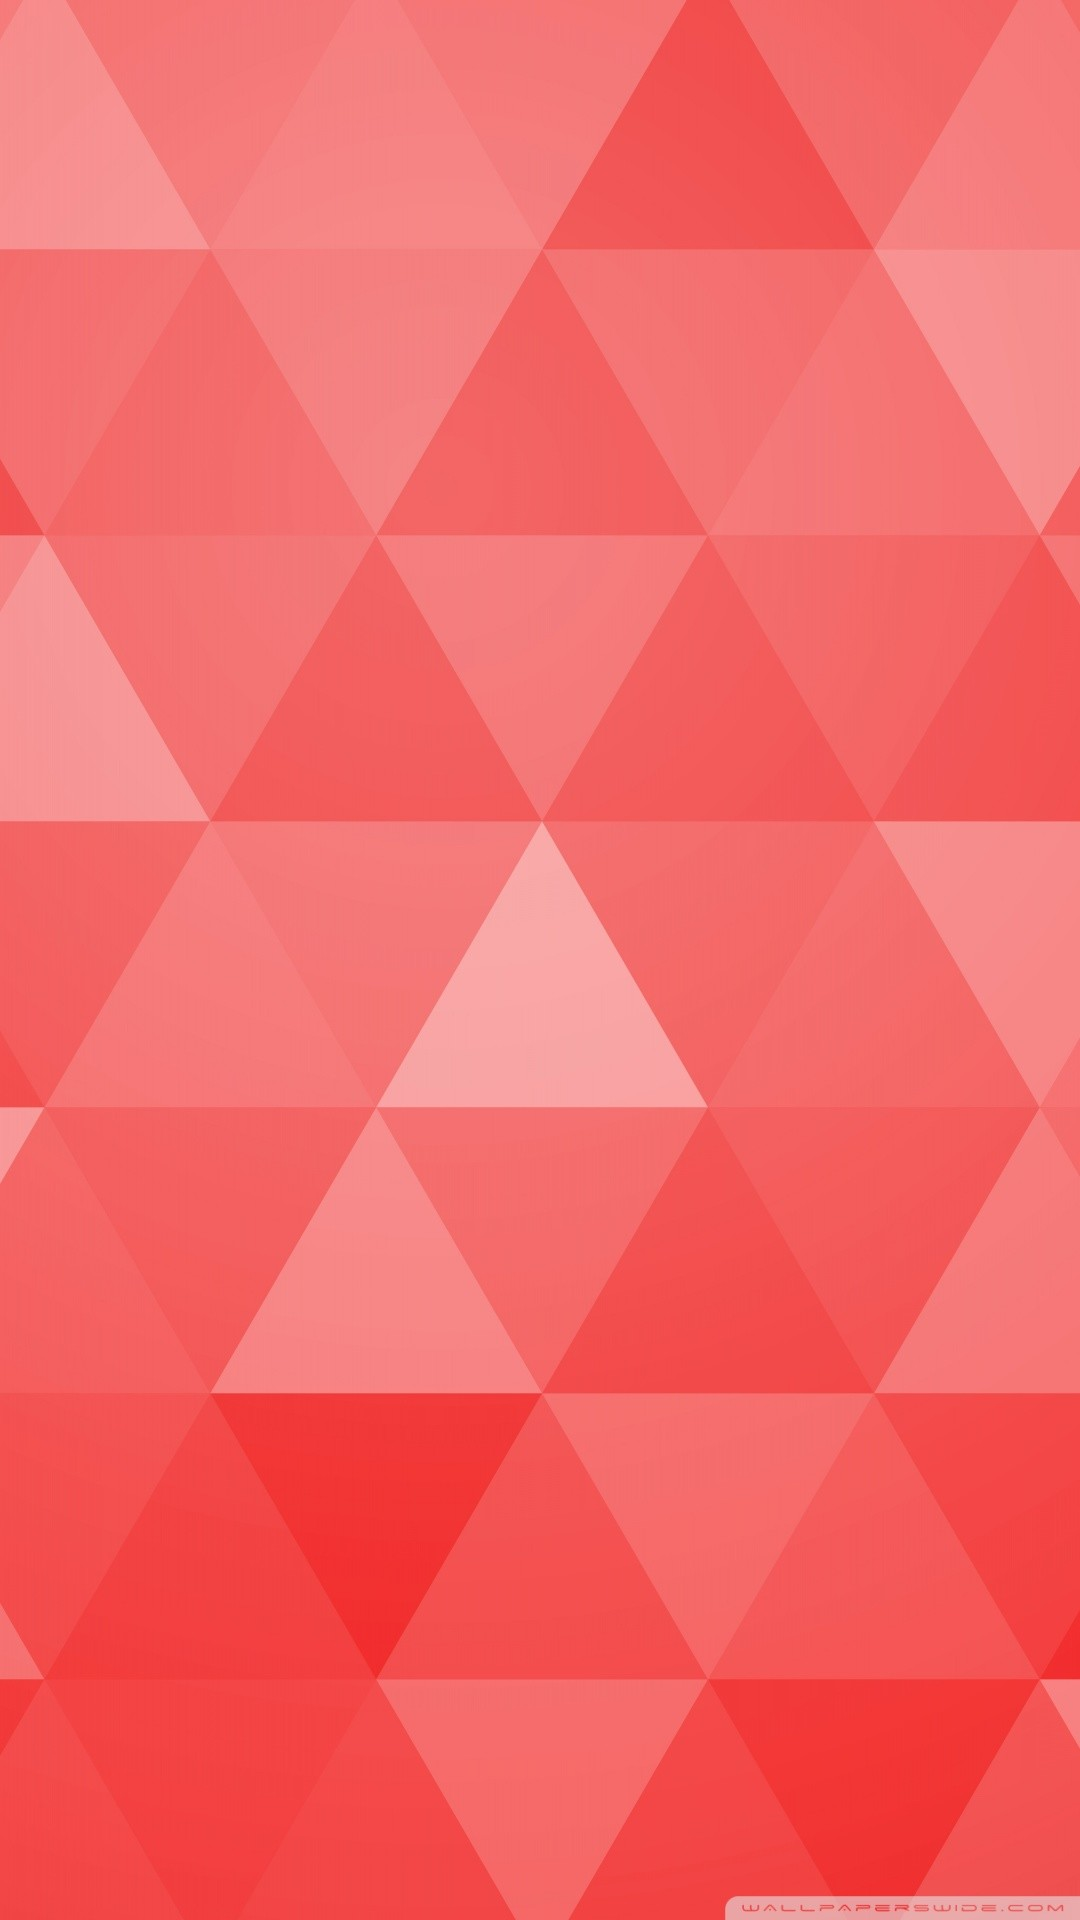 Free Red Abstract Geometric Triangle Background phone wallpaper by jjsamuel